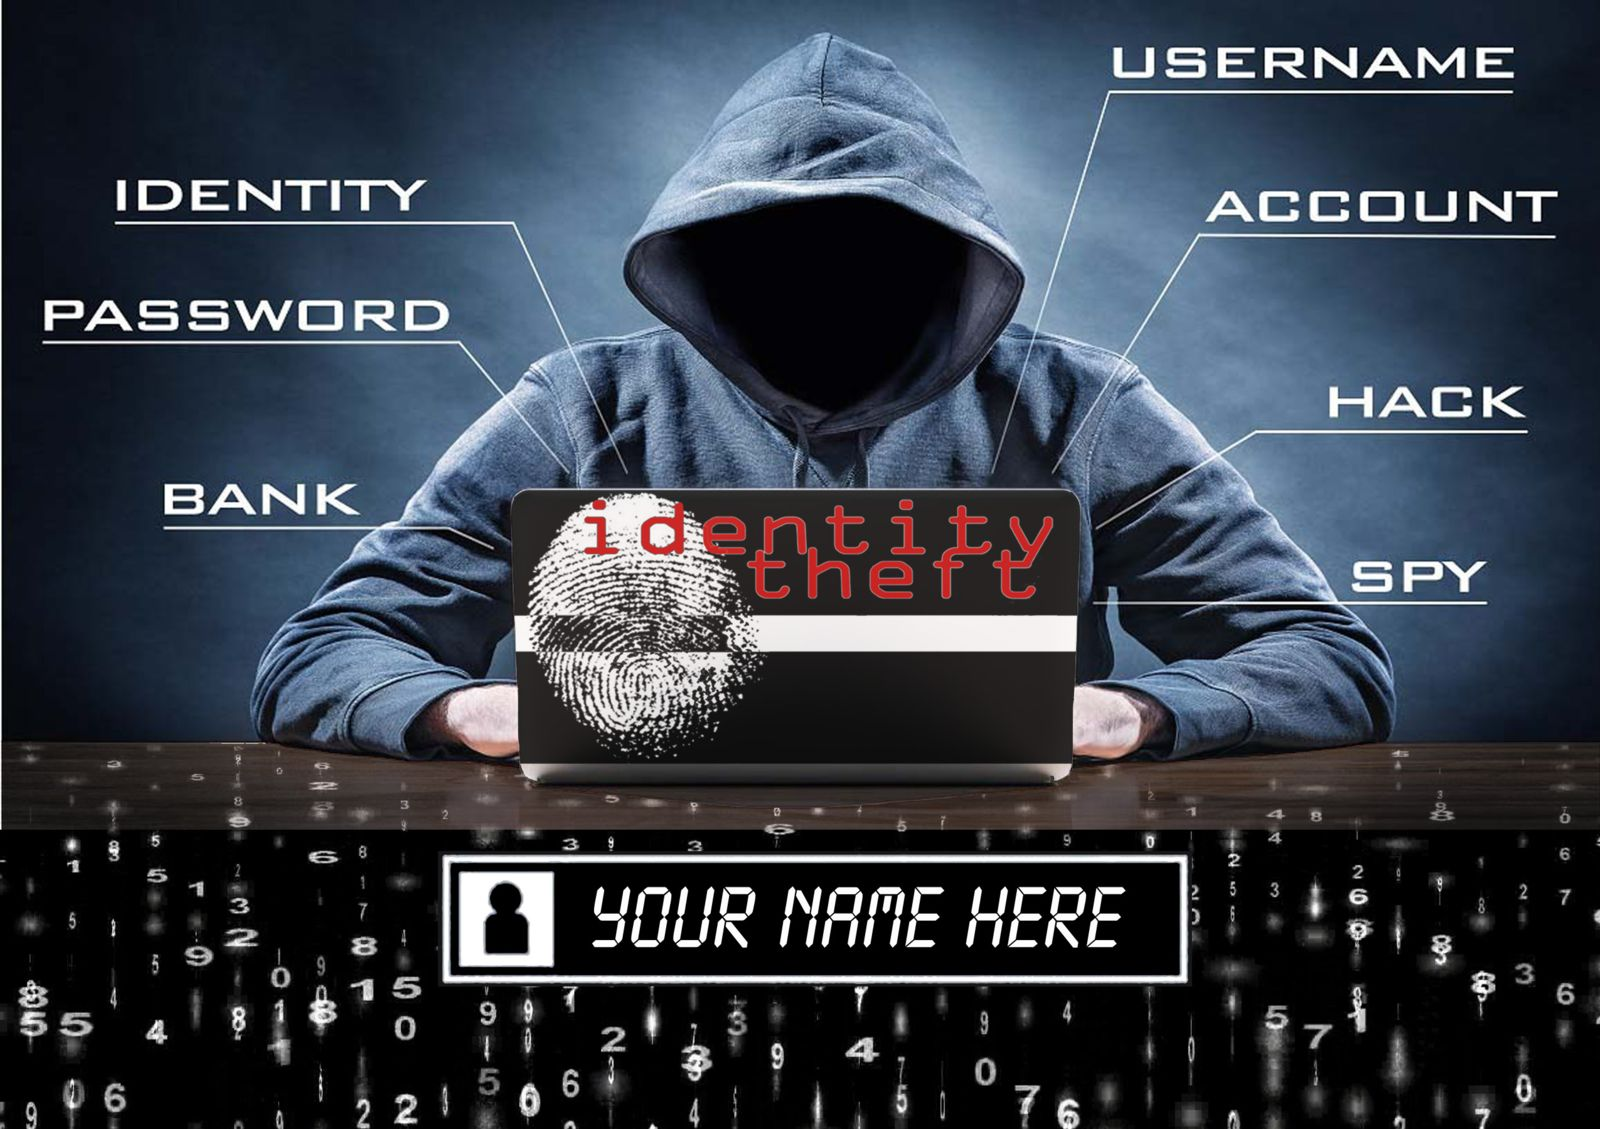 """We all have probably received those phone calls from the """"IRS""""--actually identity thieves/scammers who are looking to take as much money and assets from you that they can latch on to. Today--Monday, May 13, 2019--we were alerted to a new scam in our region, and this is one we want to make you aware of. A good friend and client of ours called to say that they had received a phone call from the """"Social Security Administration"""". Not unusual, you say? This time, they were saying that the Social Security number has been suspended and they want you to VERIFY your Social Security number! In fact, Debbi—in our offices, also received the same phone call today as well. At Field Law, pc, we want to take the time to remind you that the IRS will NEVER call you and the Social Security Administration with NEVER suspend your Social Security Number. These are all scams, whether they say you """"owe"""" money to the IRS or whether they are """"suspending"""" Social Security numbers. They only want your money, assets and identity. Don't give it to them! What you can do is to ask for their IRS or Social Security Administration Badge Number, their Station Number, where they are located at, and to then speak to their Supervisor. Most of the time they will hang up on you and not call you back. If they are persistent and keep calling you back, invest in a loud referee's whistle so that when they do call you back you can blow it loudly into your phone. They'll get the message."""